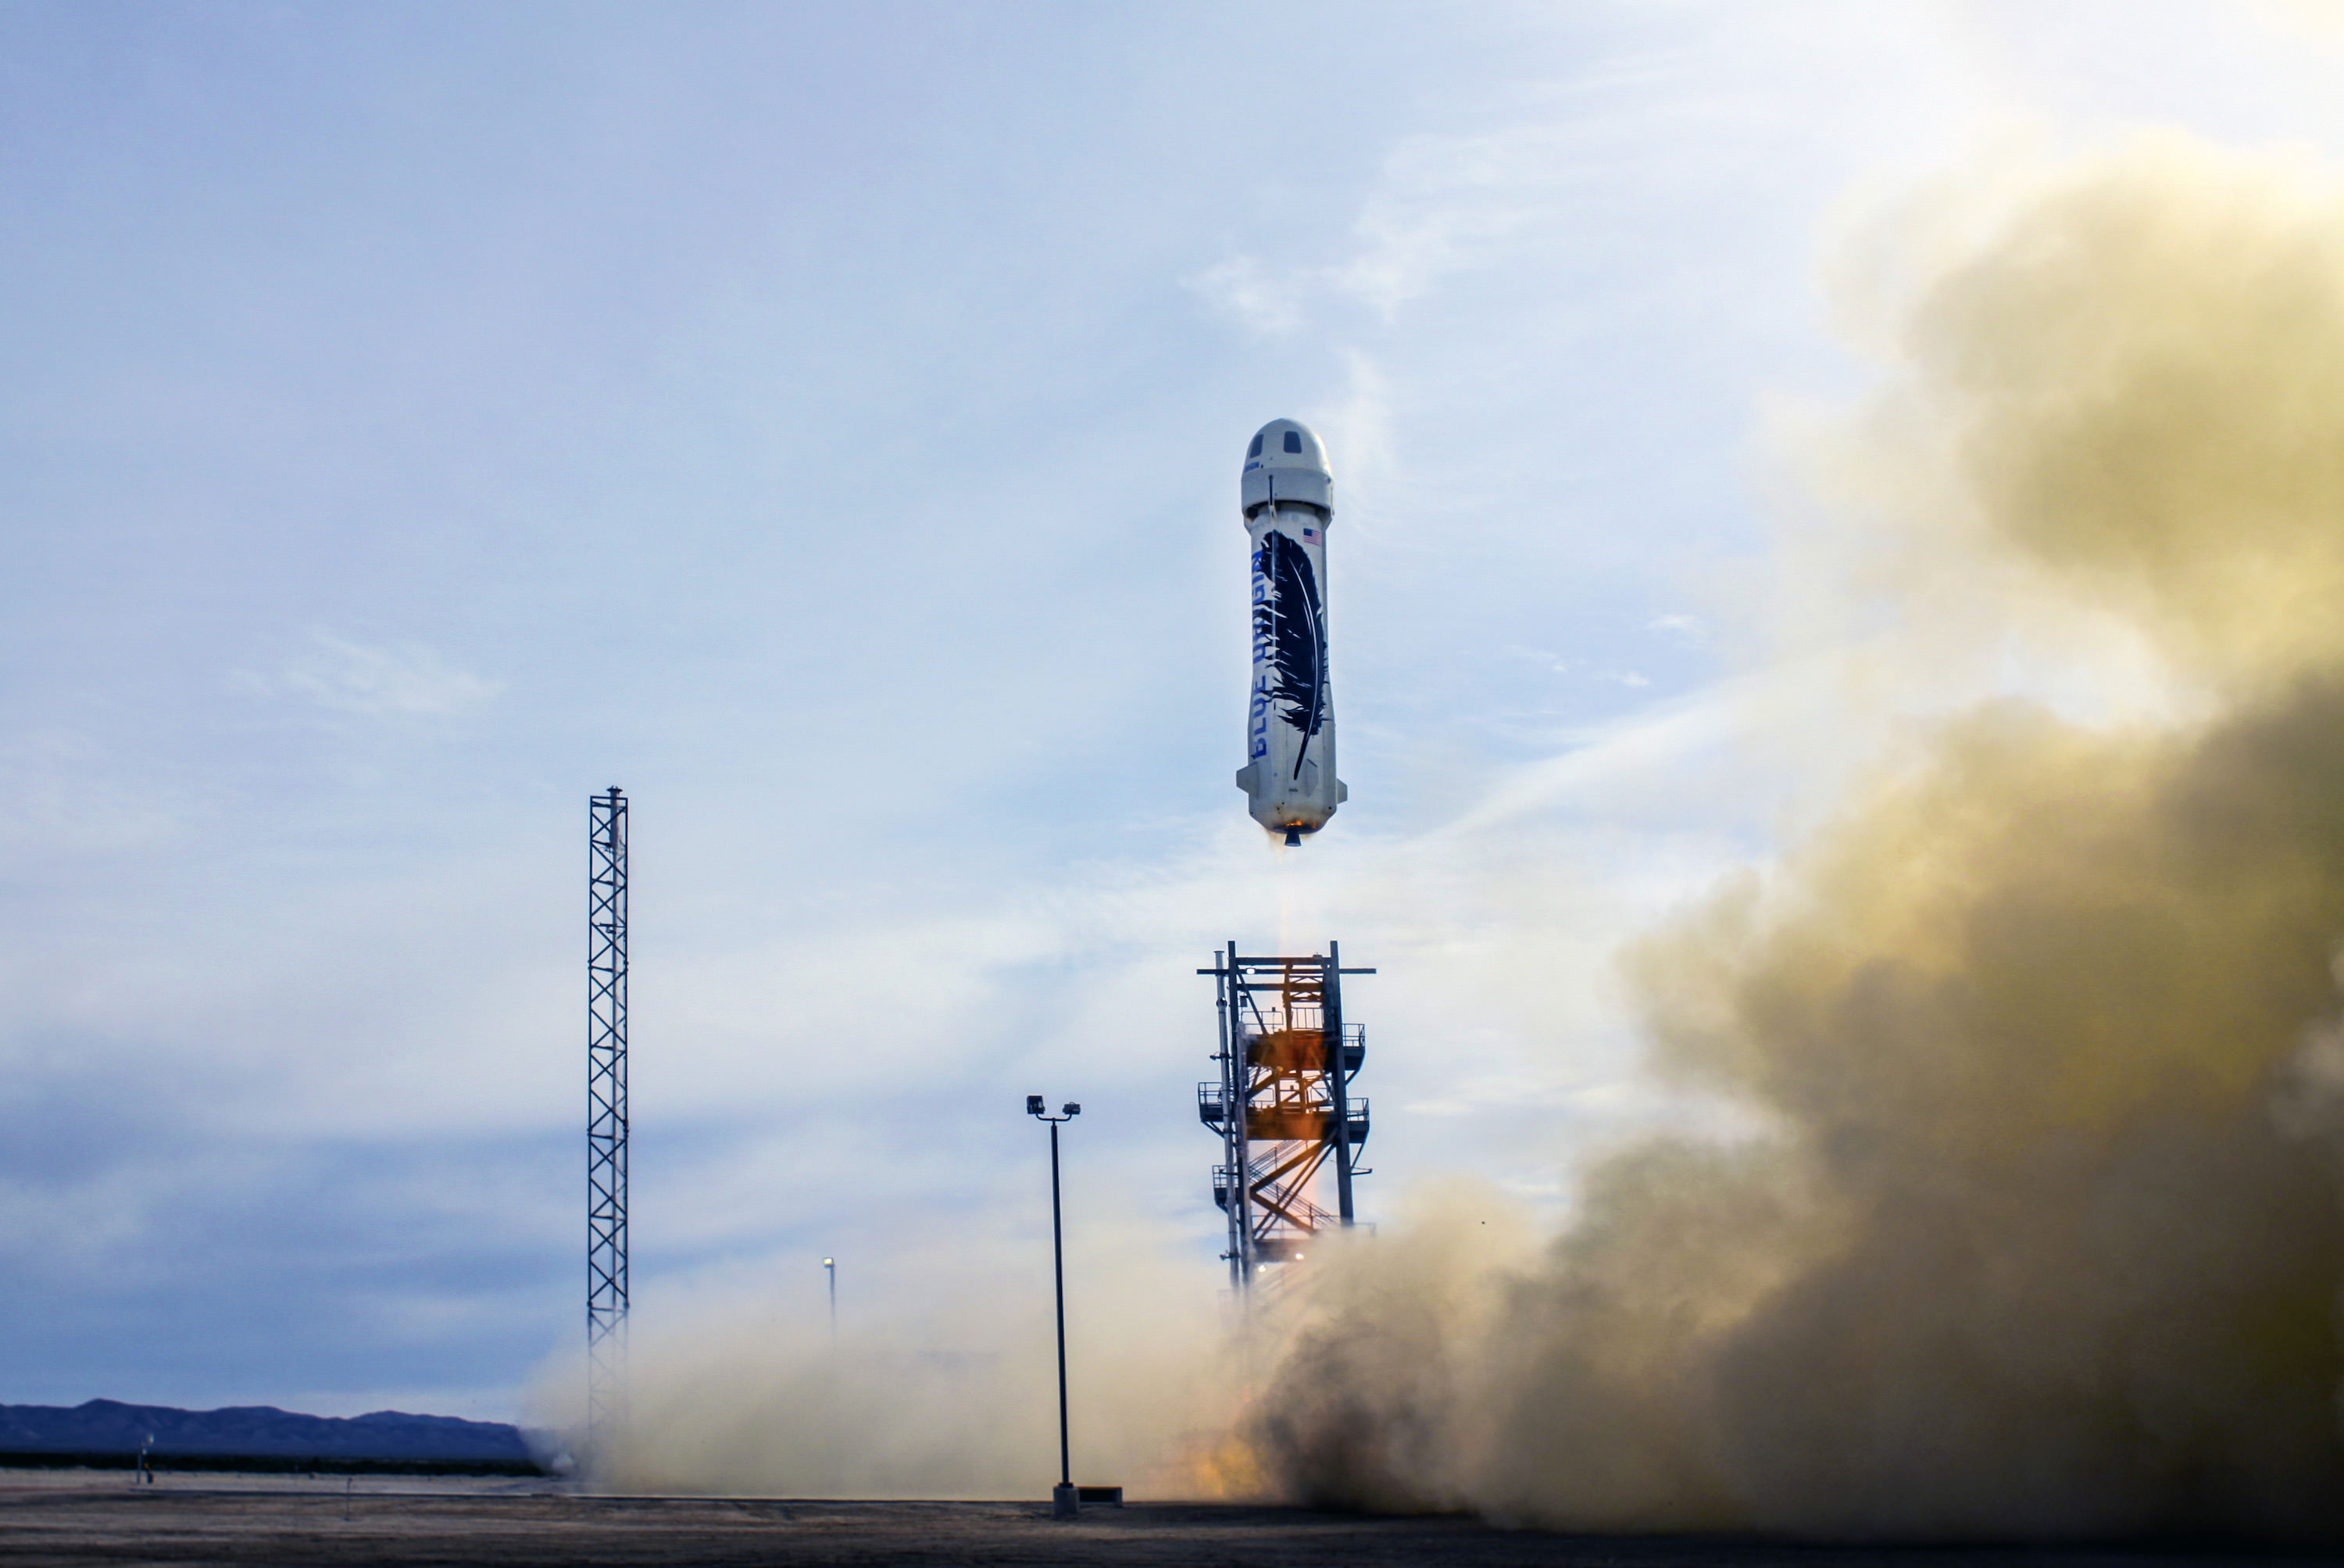 The launch of the New Shepard rocket from Blue Origin's launch site in Texas on Nov. 23, 2015. Credit: Blue Origin.